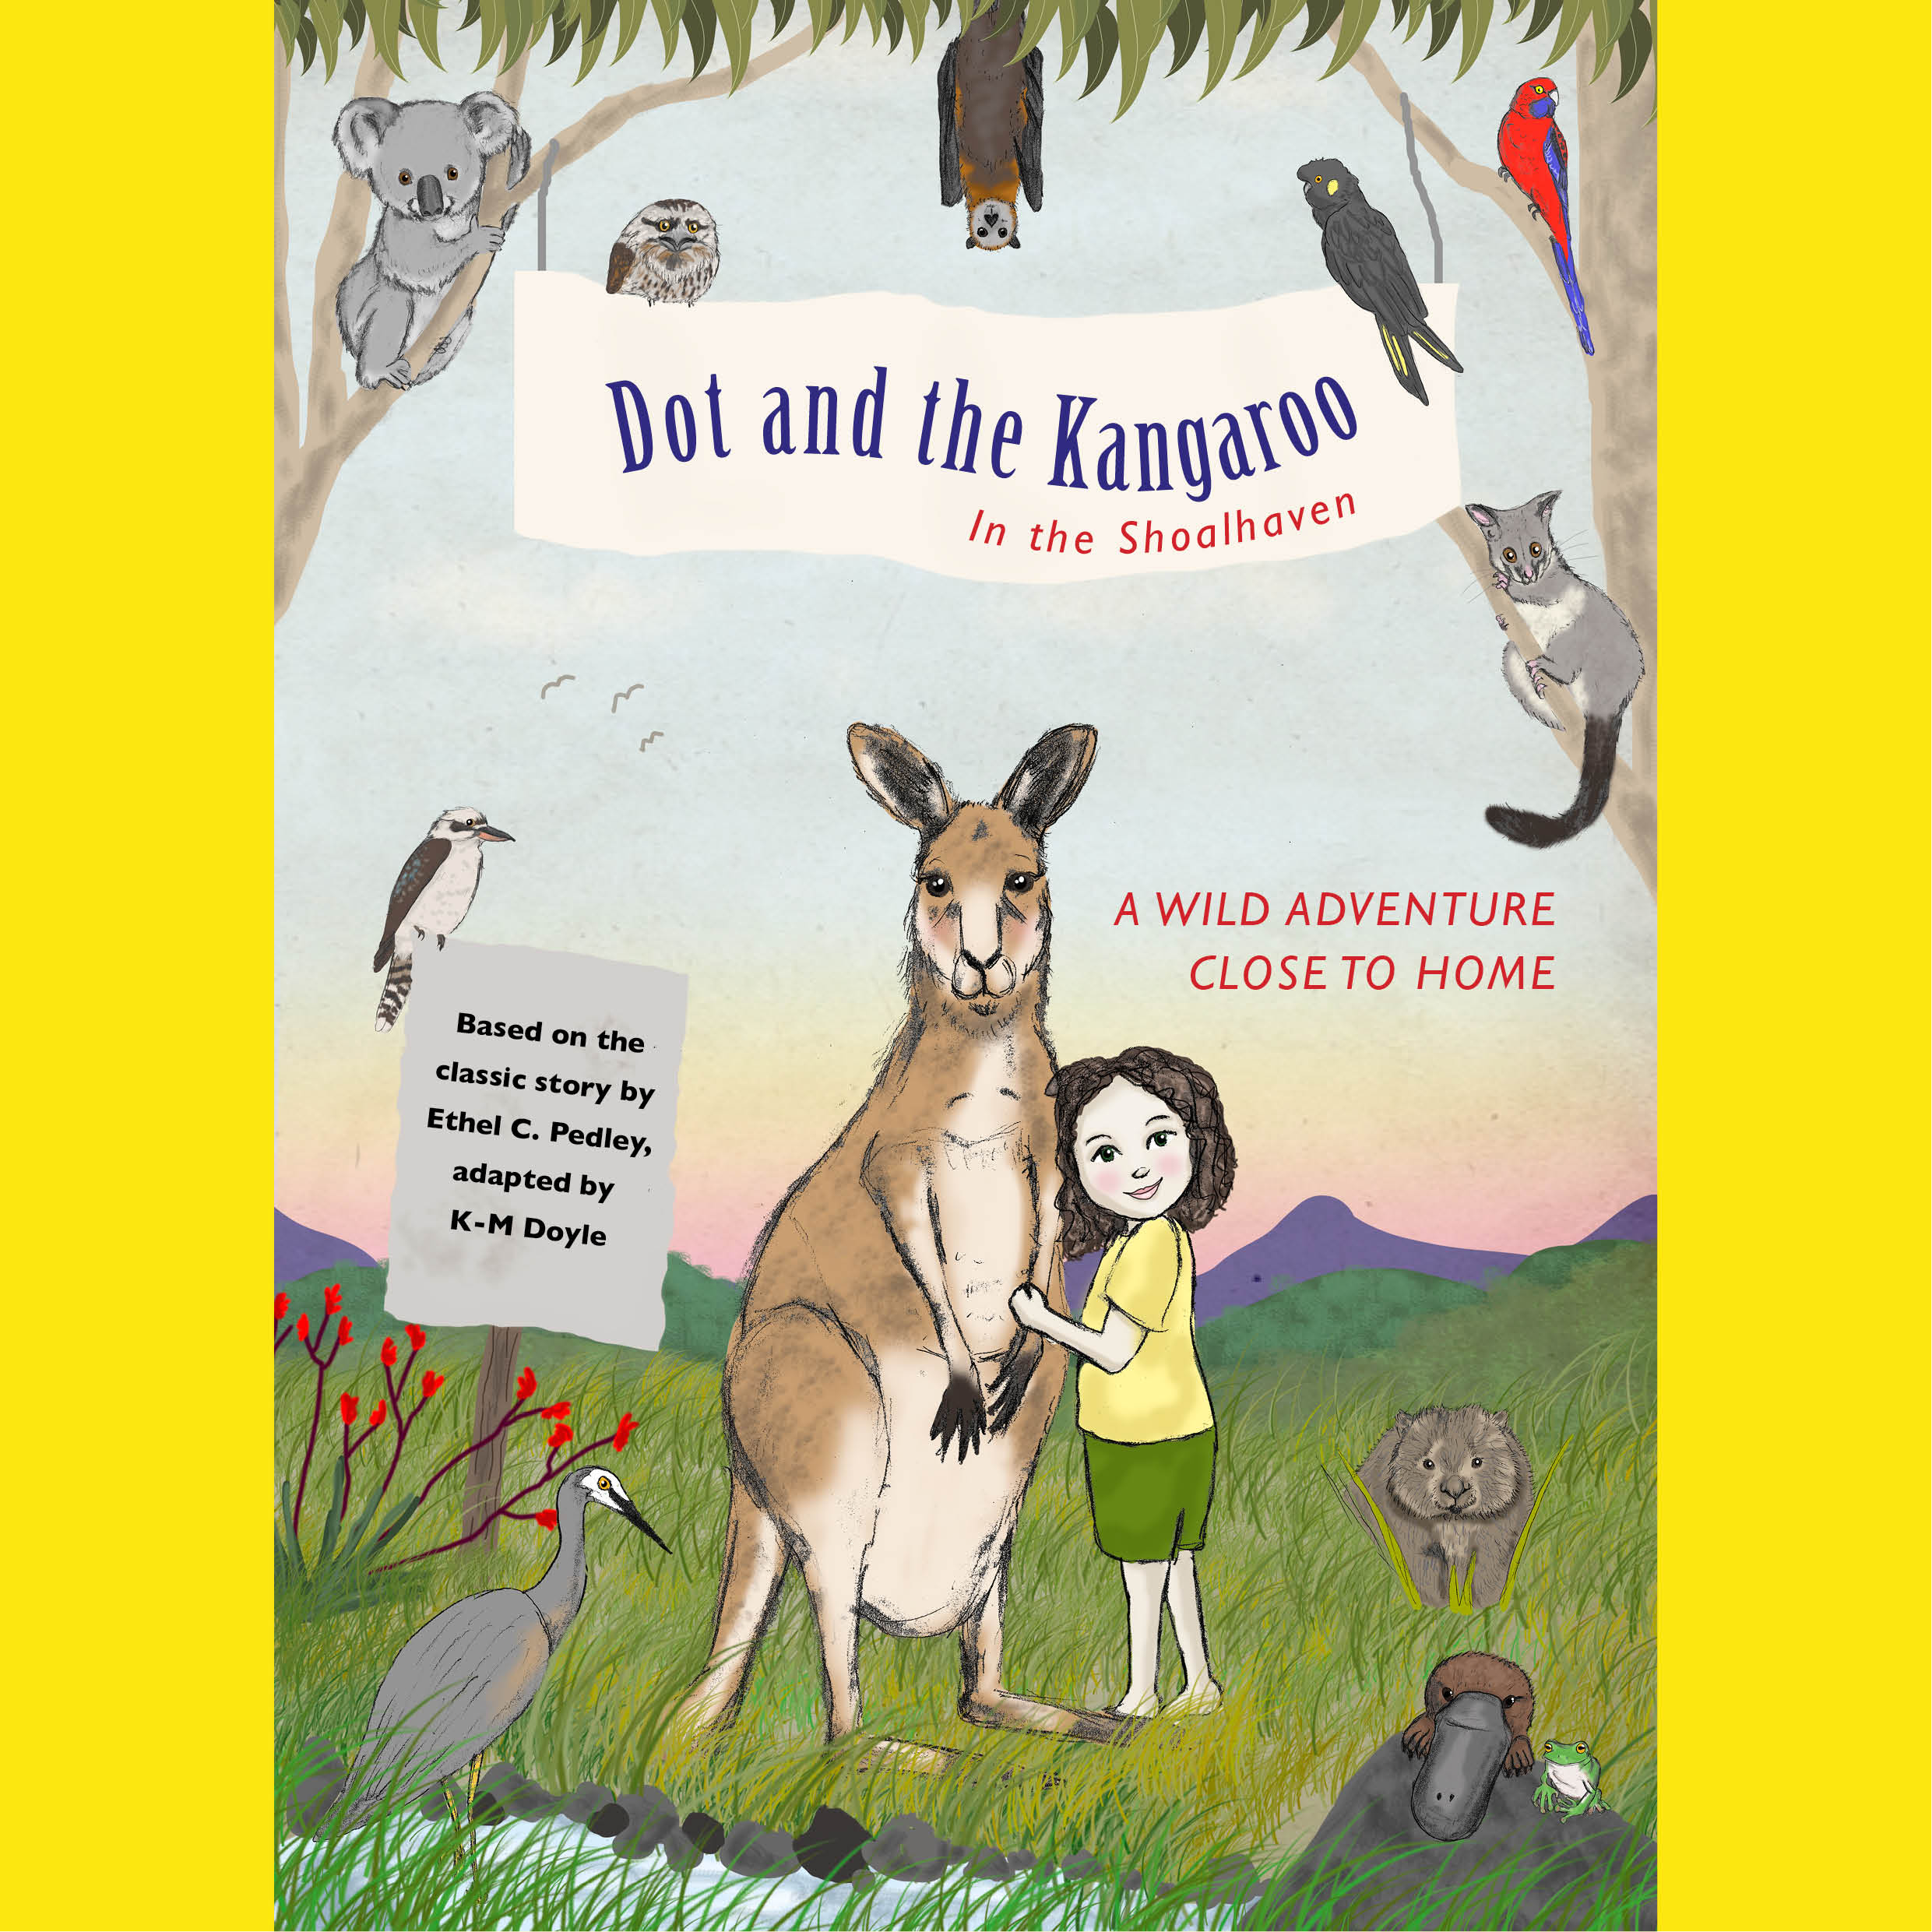 Tickets for Dot and the Kangaroo in the Shoalhaven in Ulladulla from Ticketbooth